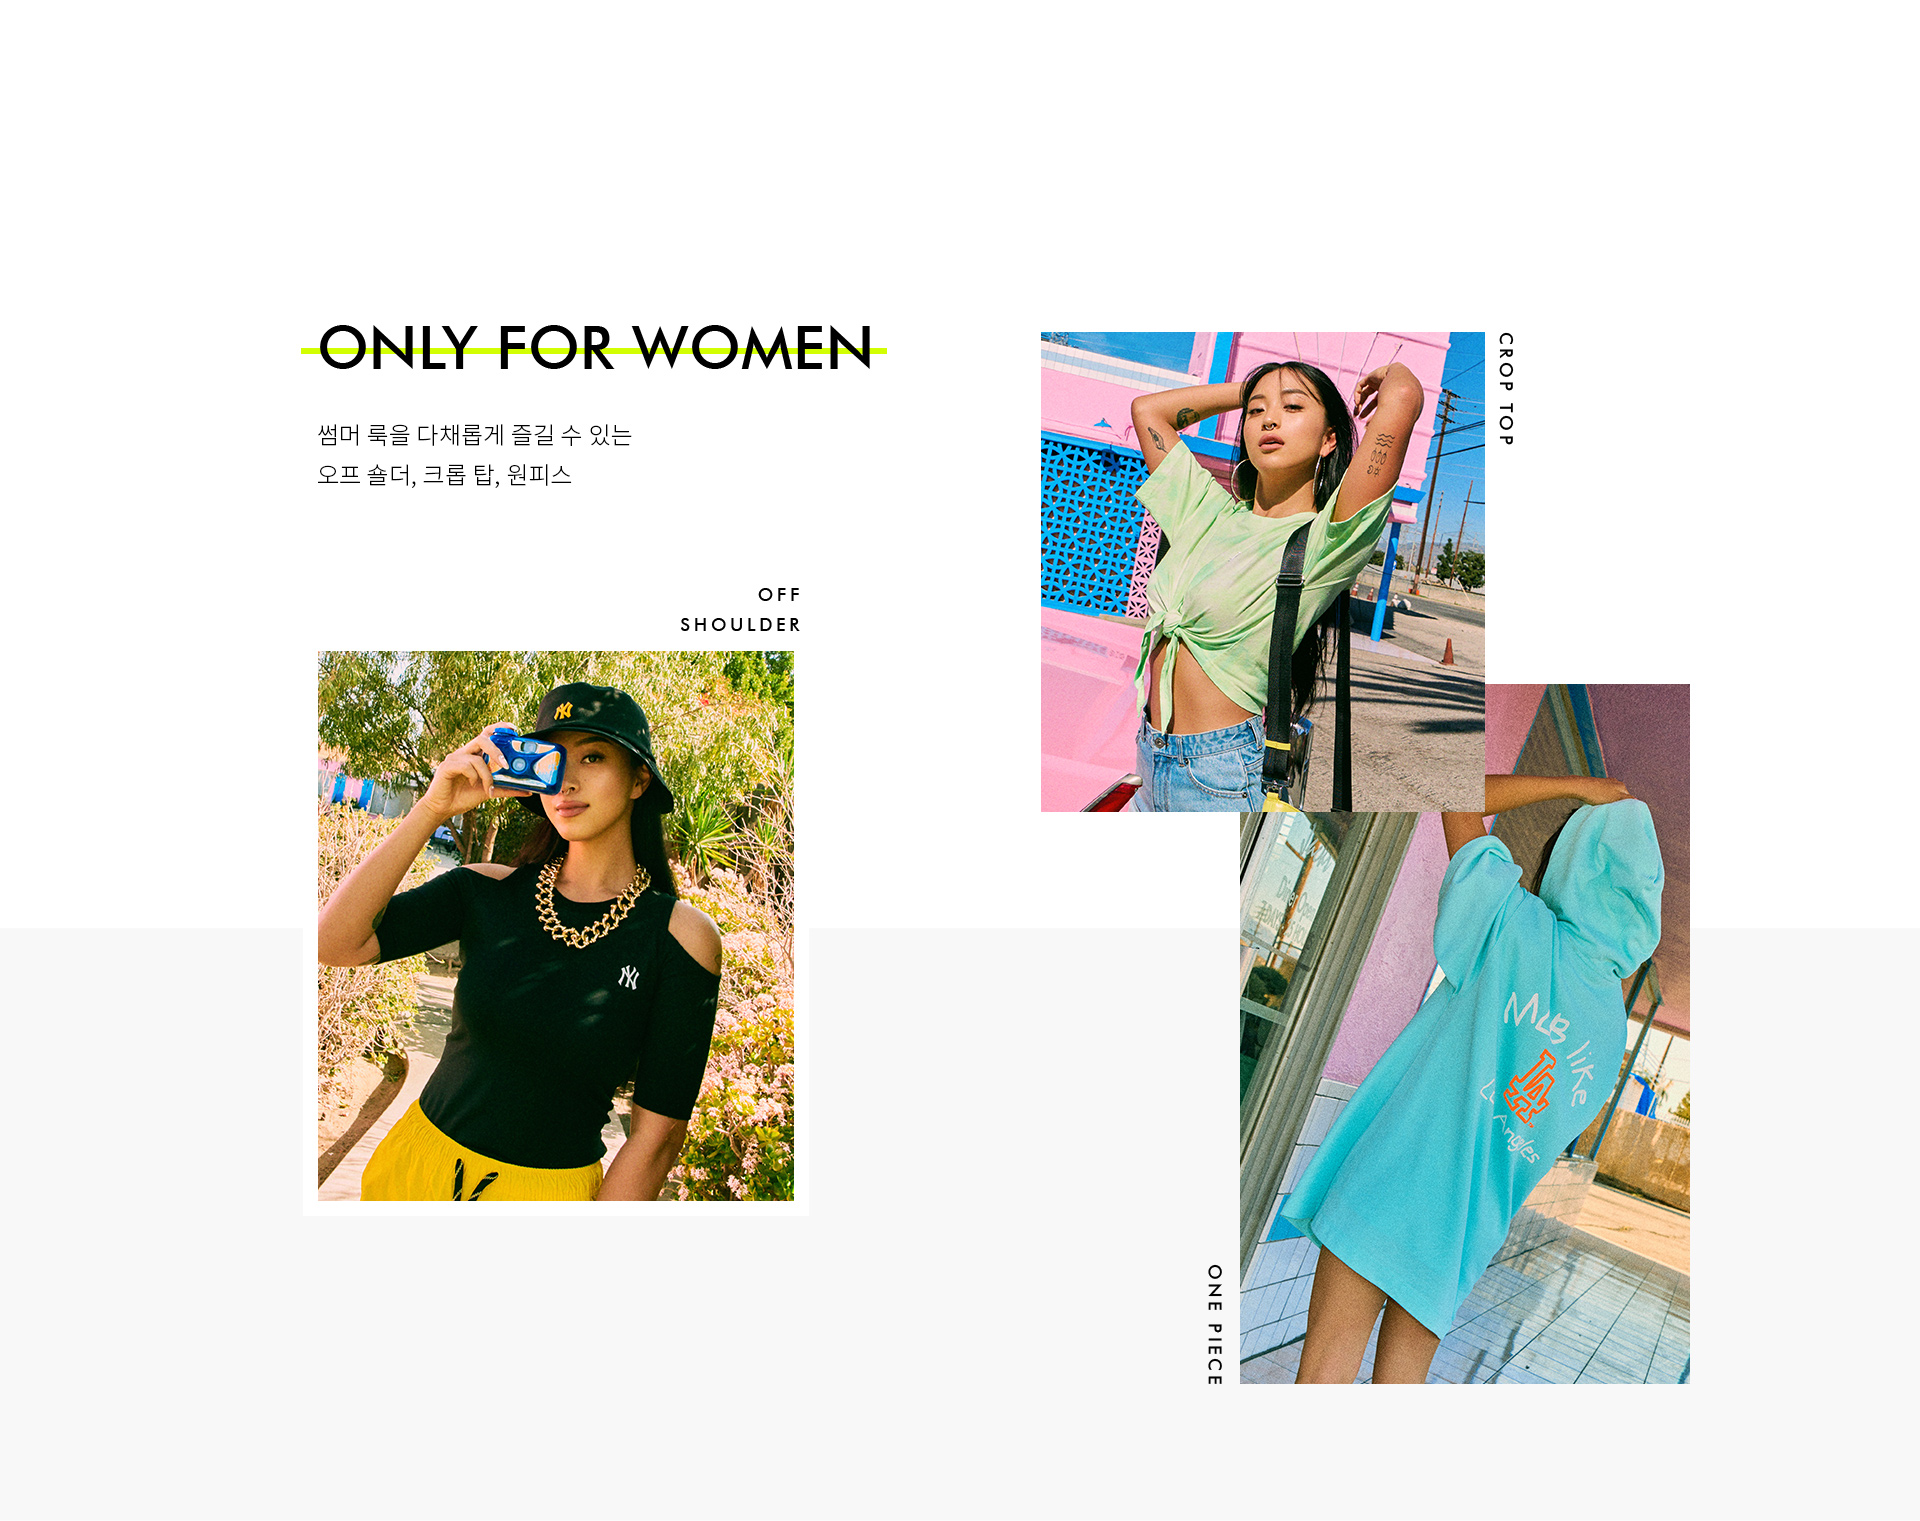 ONLY FOR WOMEN 썸머 룩을 다채롭게 즐길 수 있는 오프 숄더, 크롭 탑, 원피스 crop top OFF shoulder ONE piece